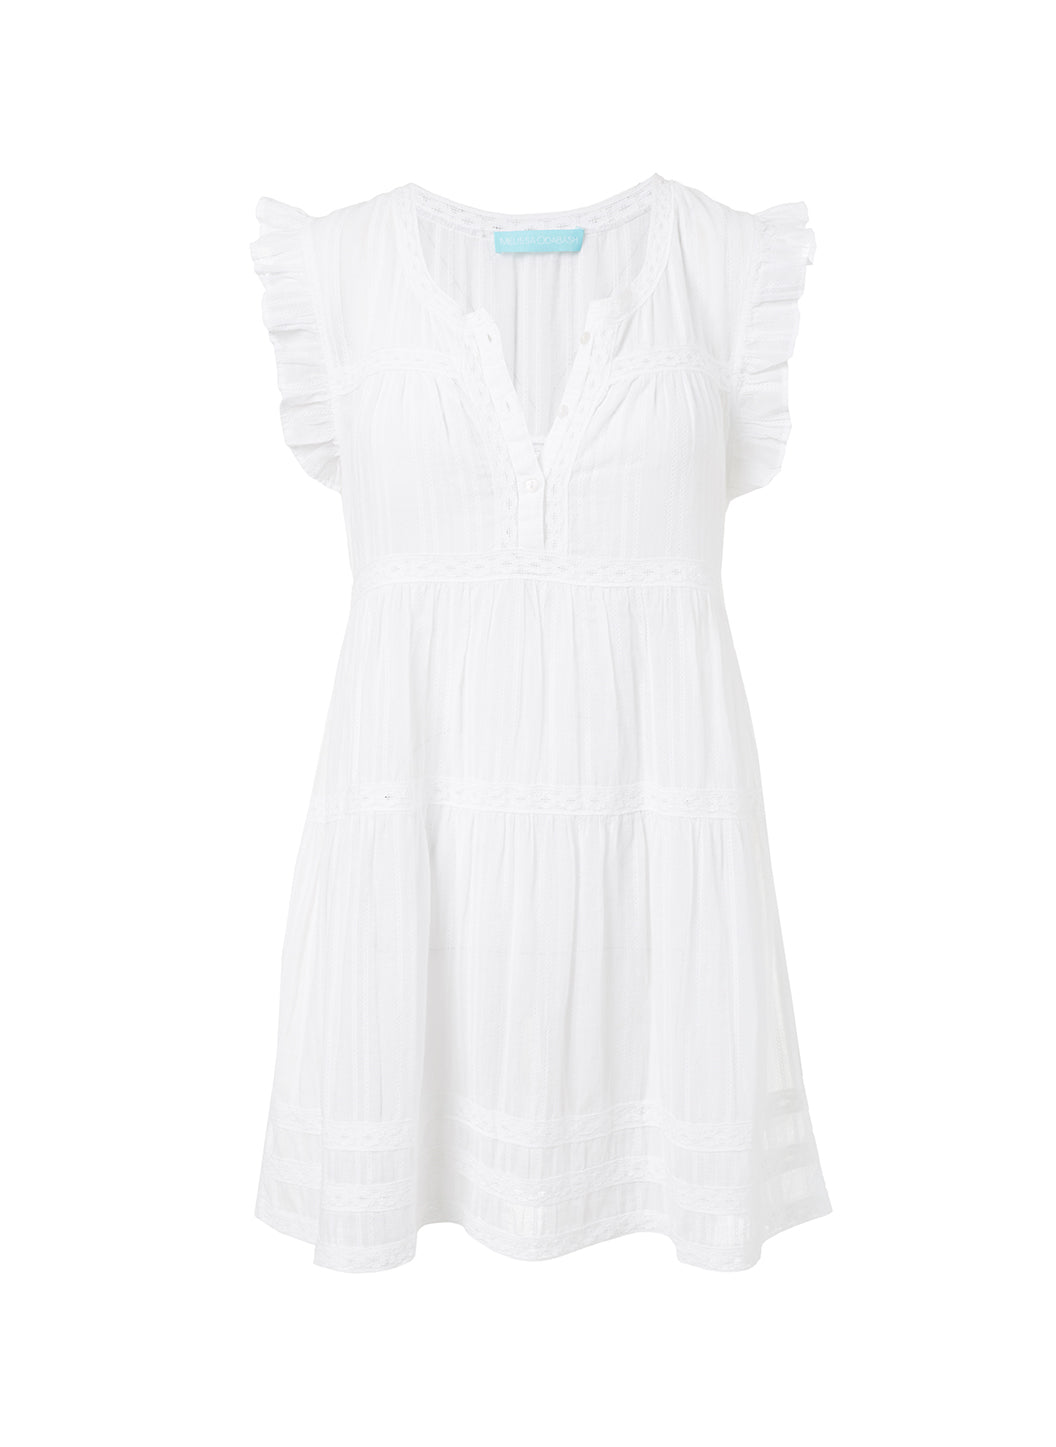 Rebekah White Button-Front Short Dress - Melissa Odabash Dresses & Kaftans